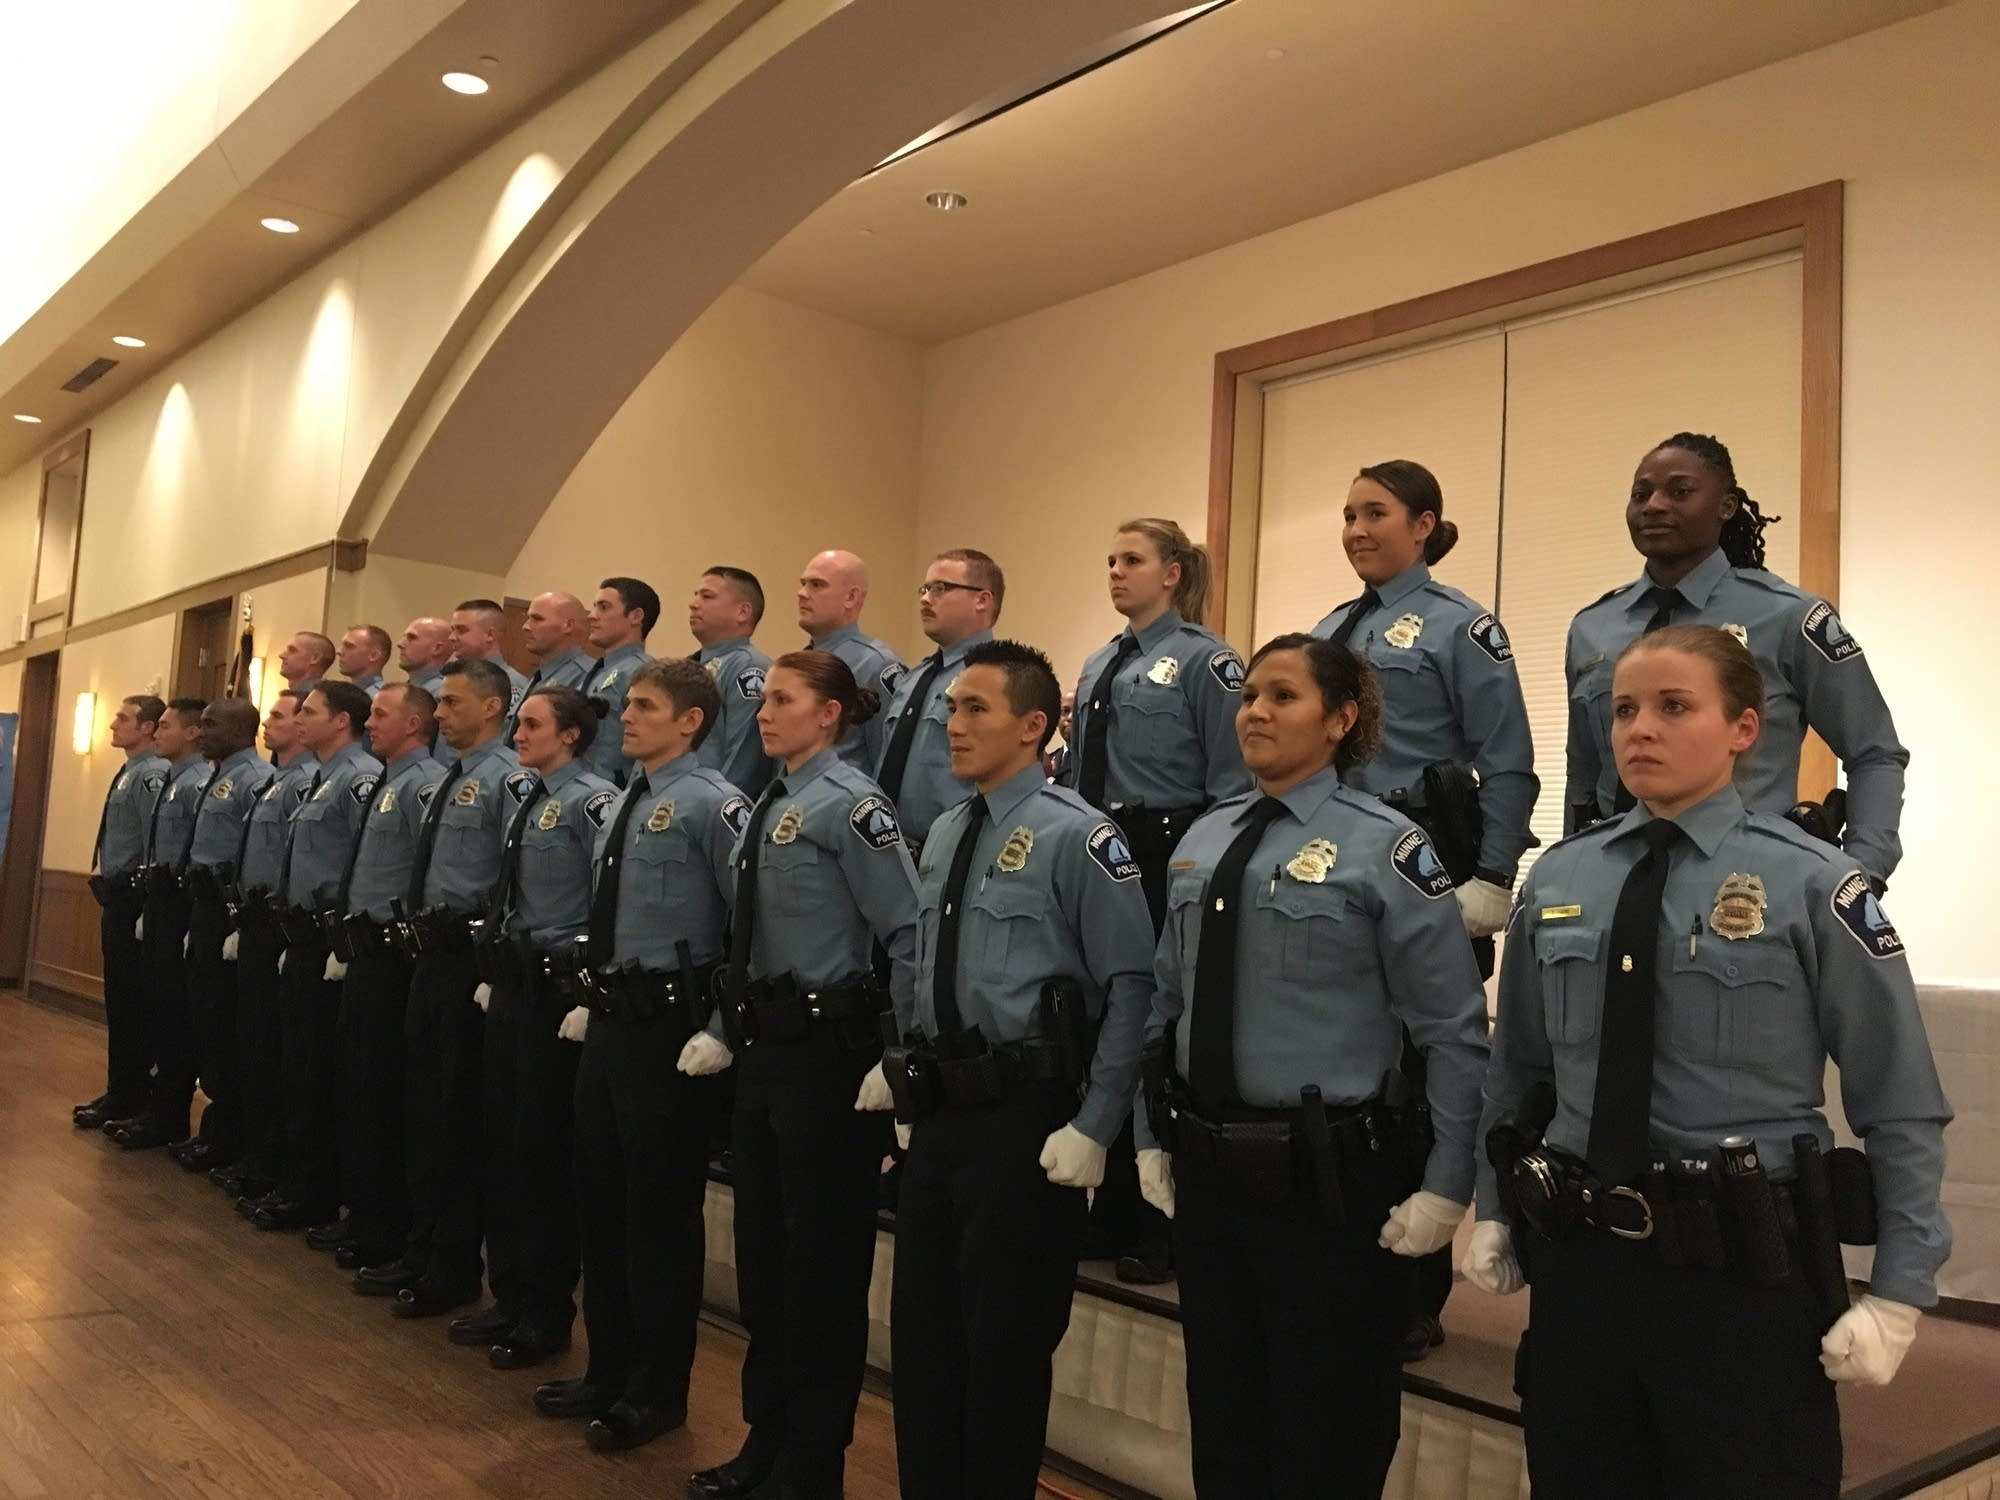 New Minneapolis police officers sworn in